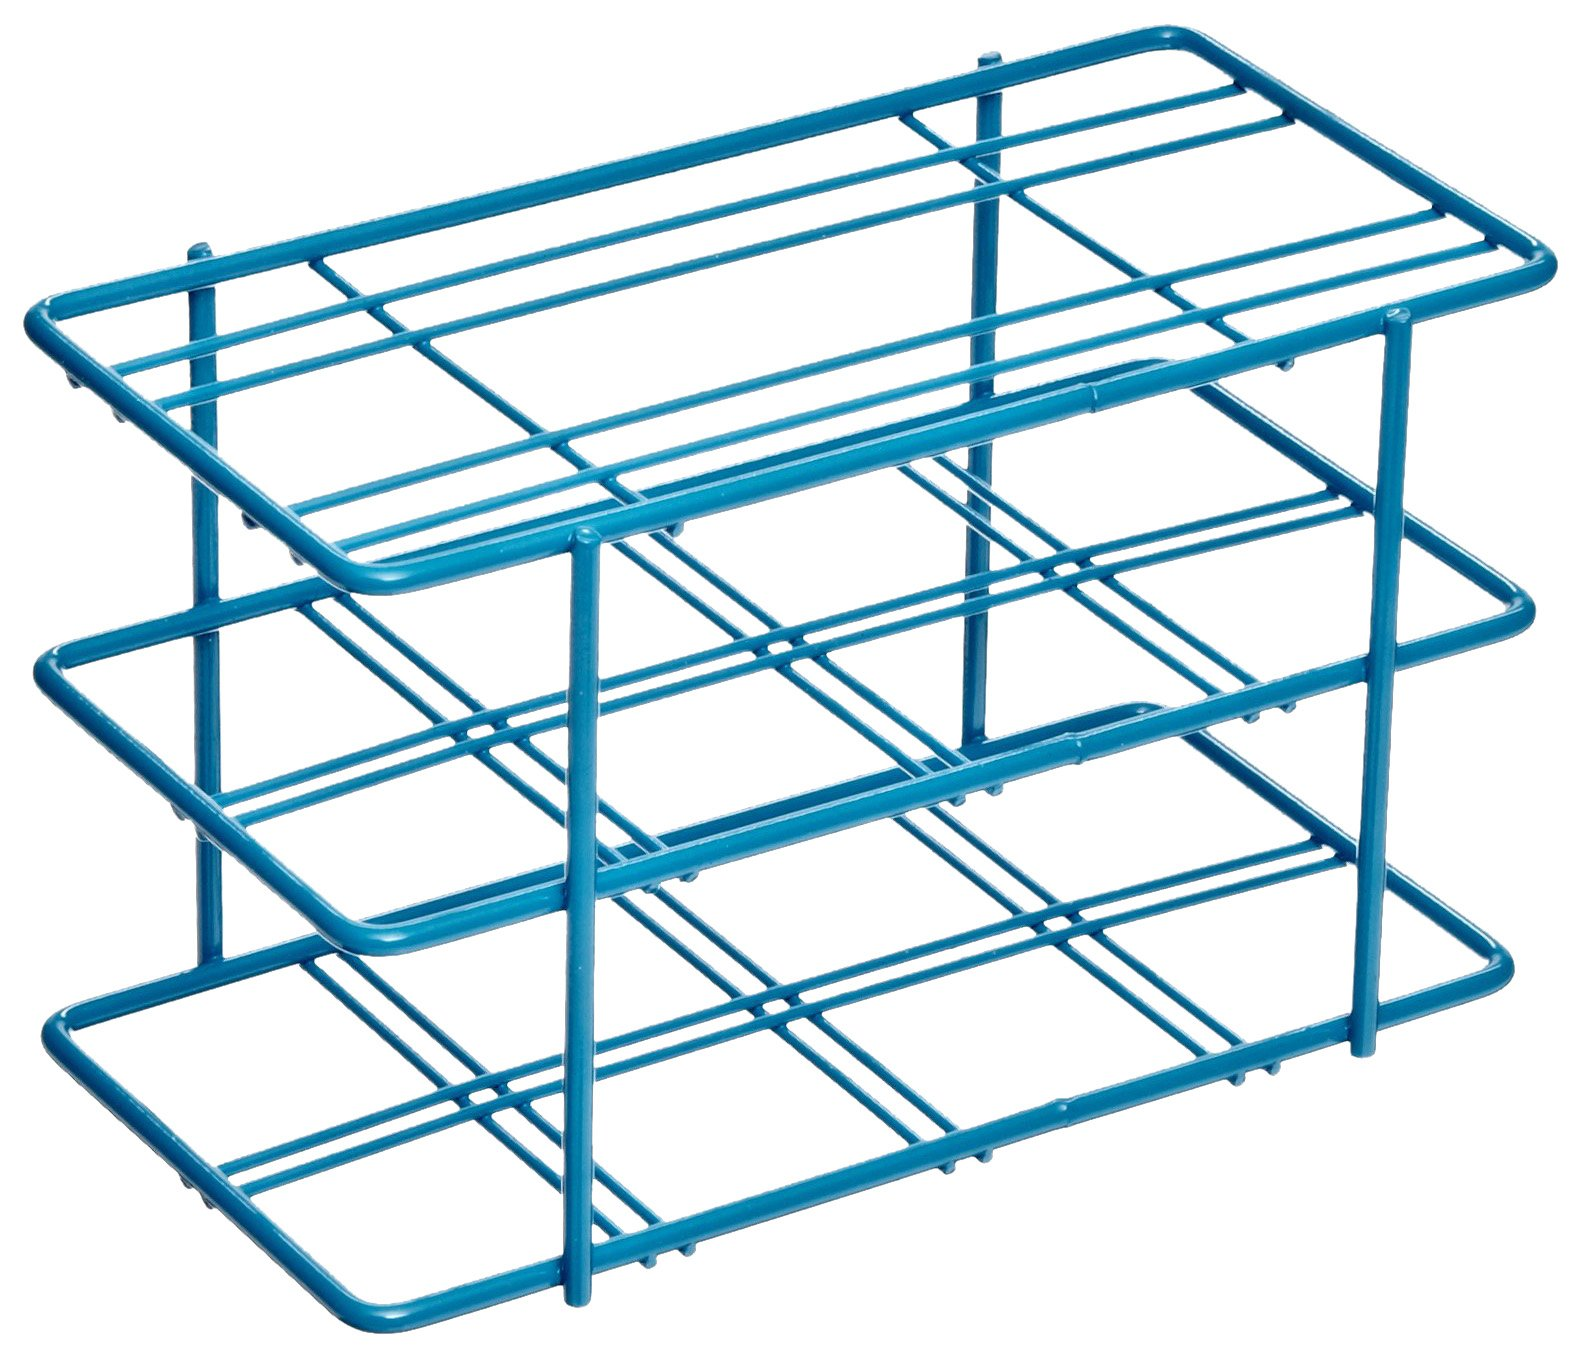 Bel-Art F18794-0000 Poxygrid Centrifuge Tube Rack; 50ml, 8 Places, 3³/₁₆ x 5⅞ x 3⅝ in, Blue